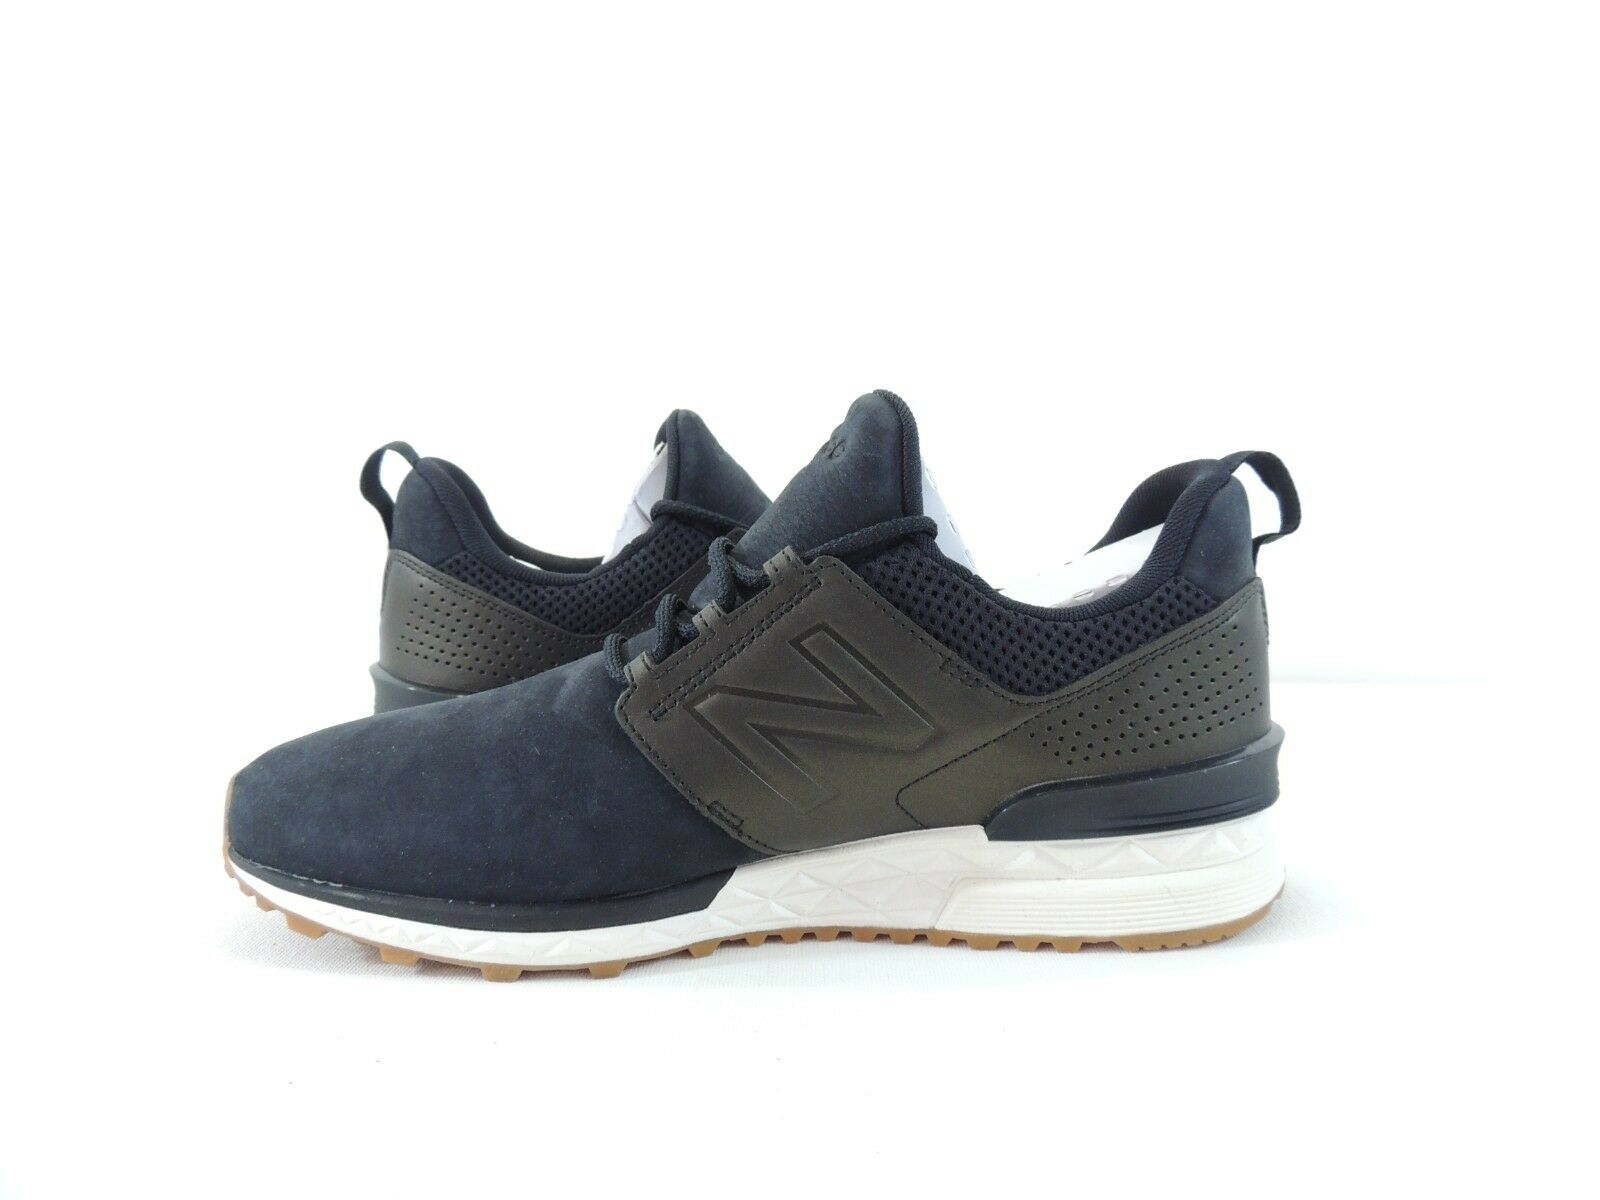 New New New Balance Womens Nubuck WS574DS Sneakers Athletic shoes Black gold Size 10 791d7a